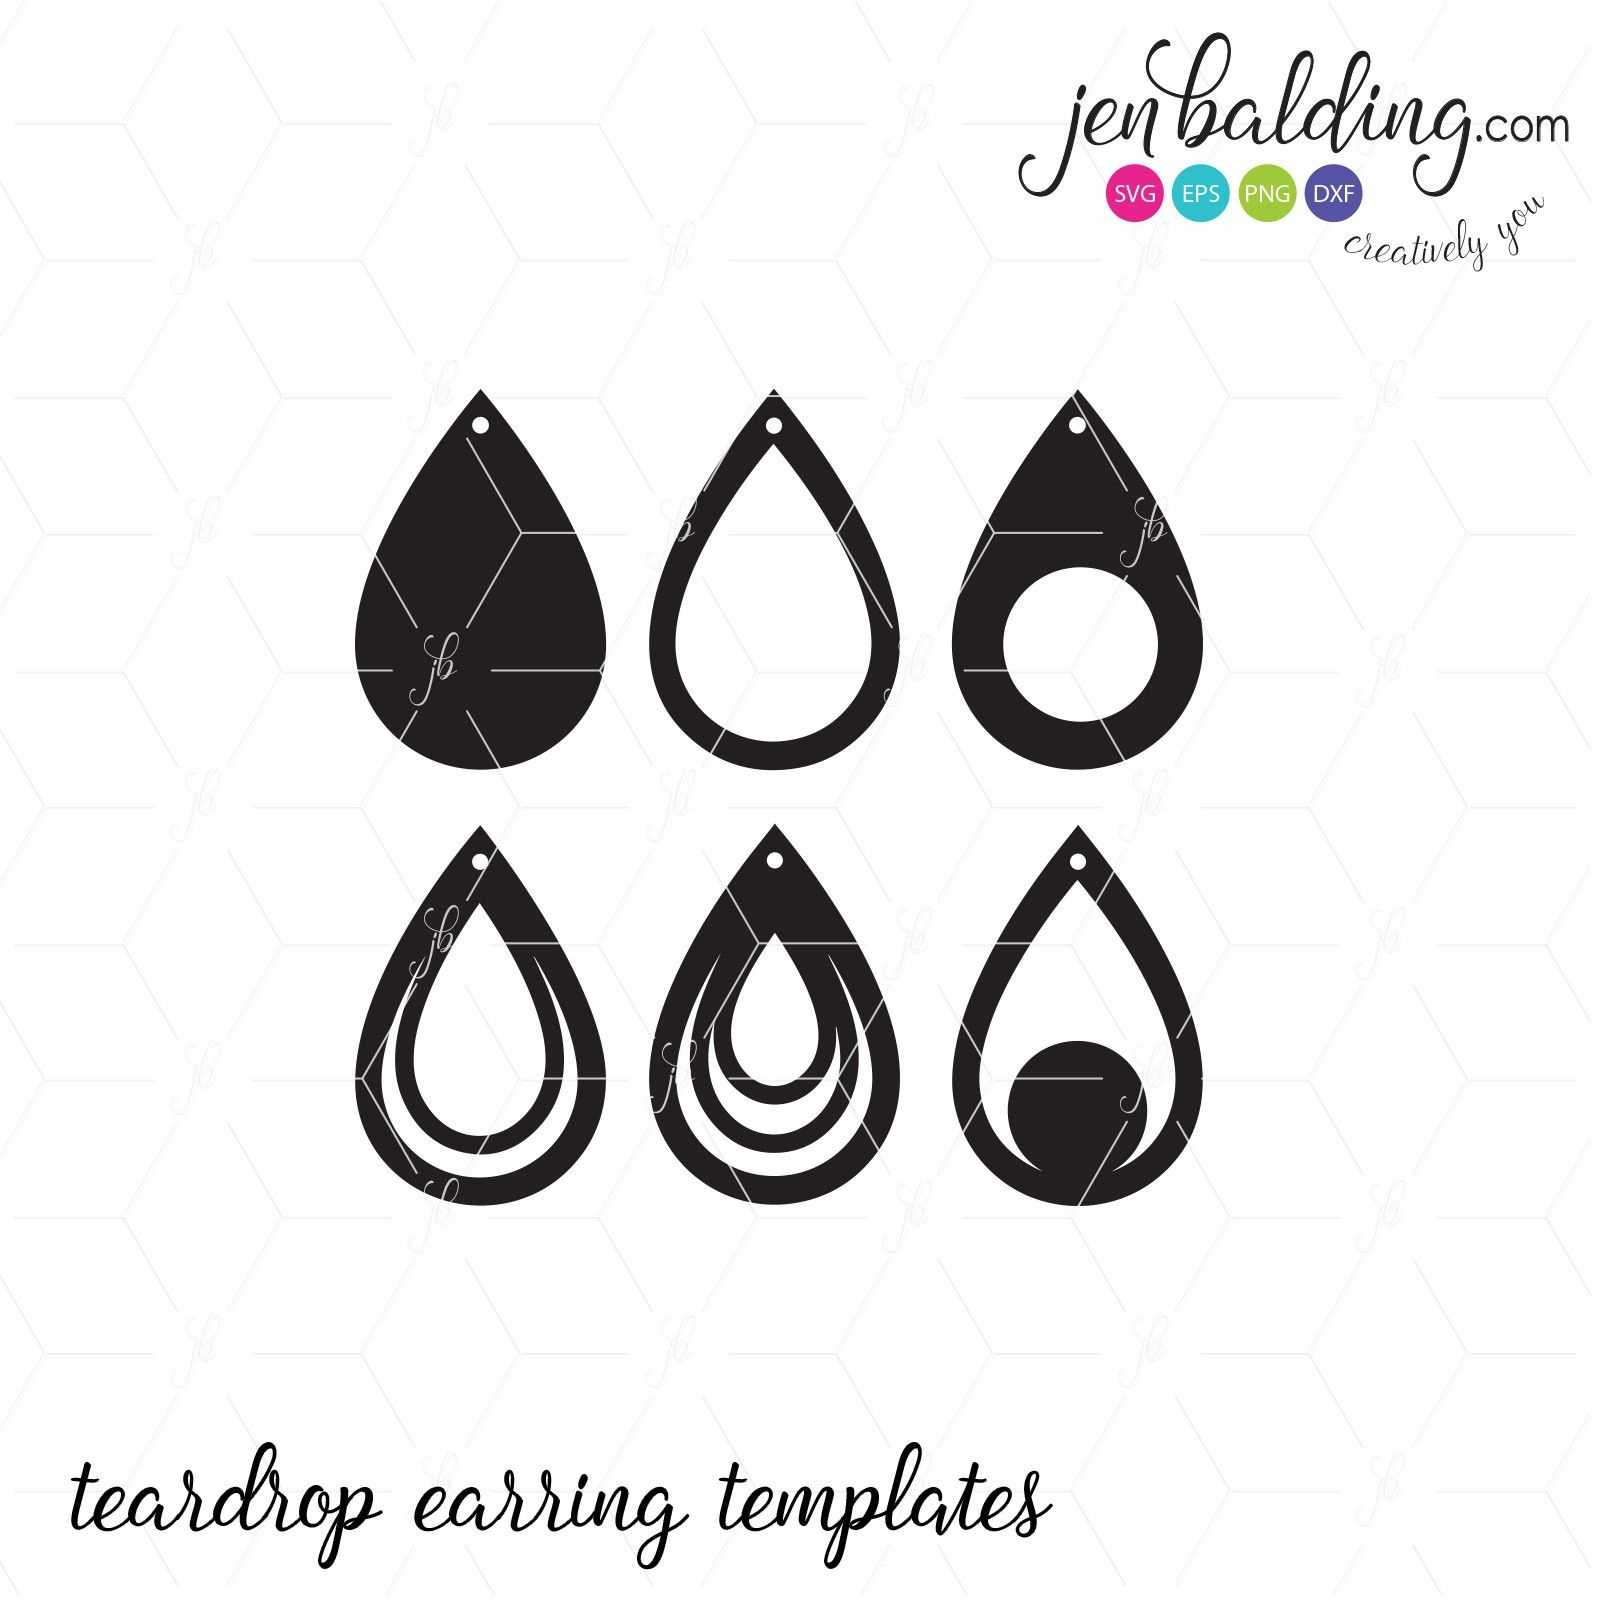 Free Svg Card Templates | Best  | Leather Earrings Inside Free Svg Card Templates